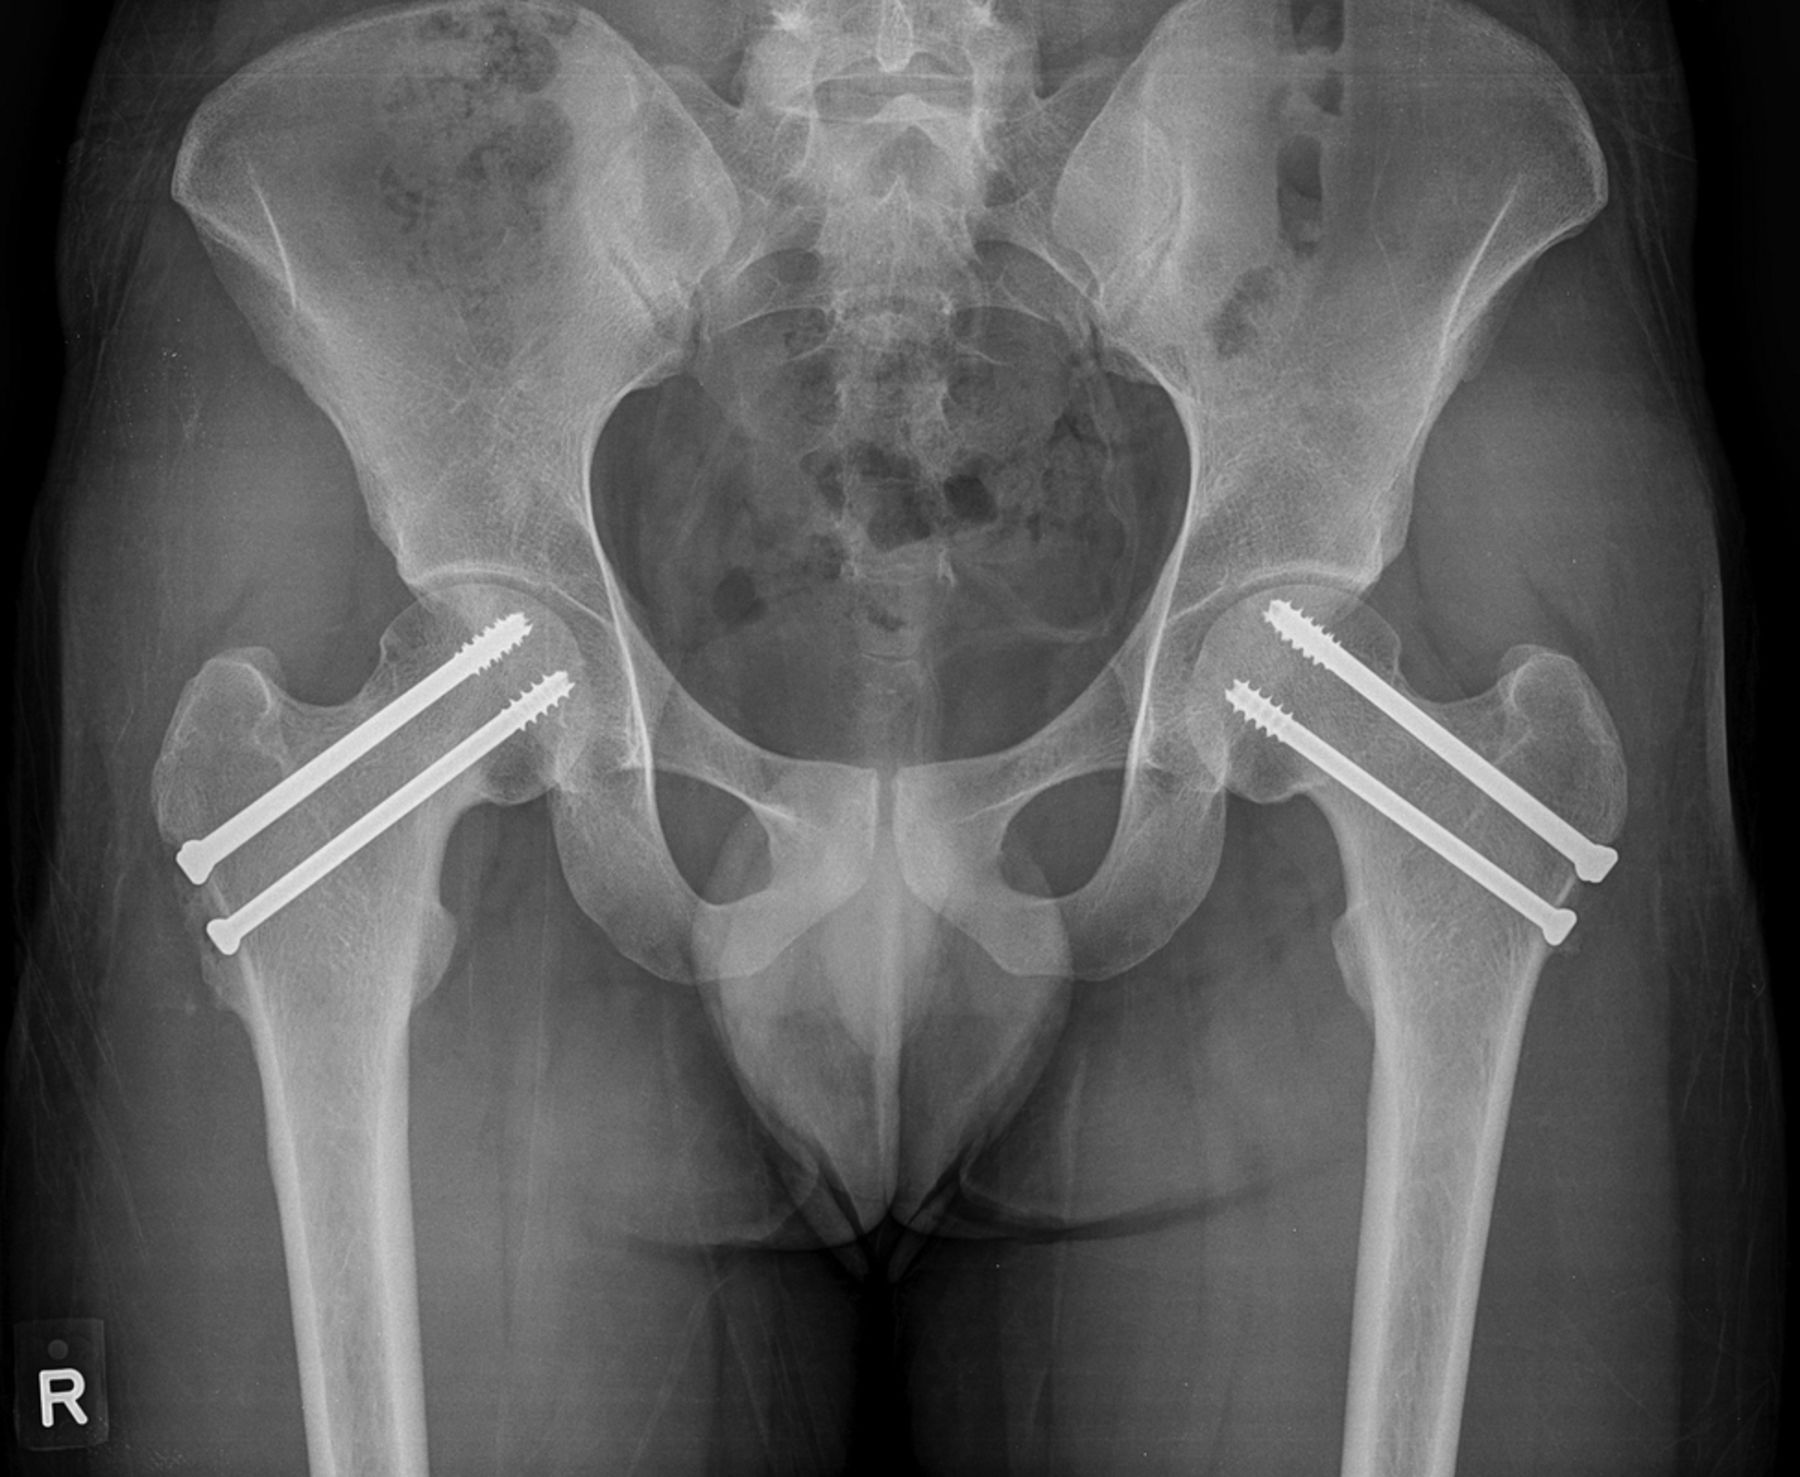 Bilateral Femoral Neck Stress Fractures In Military